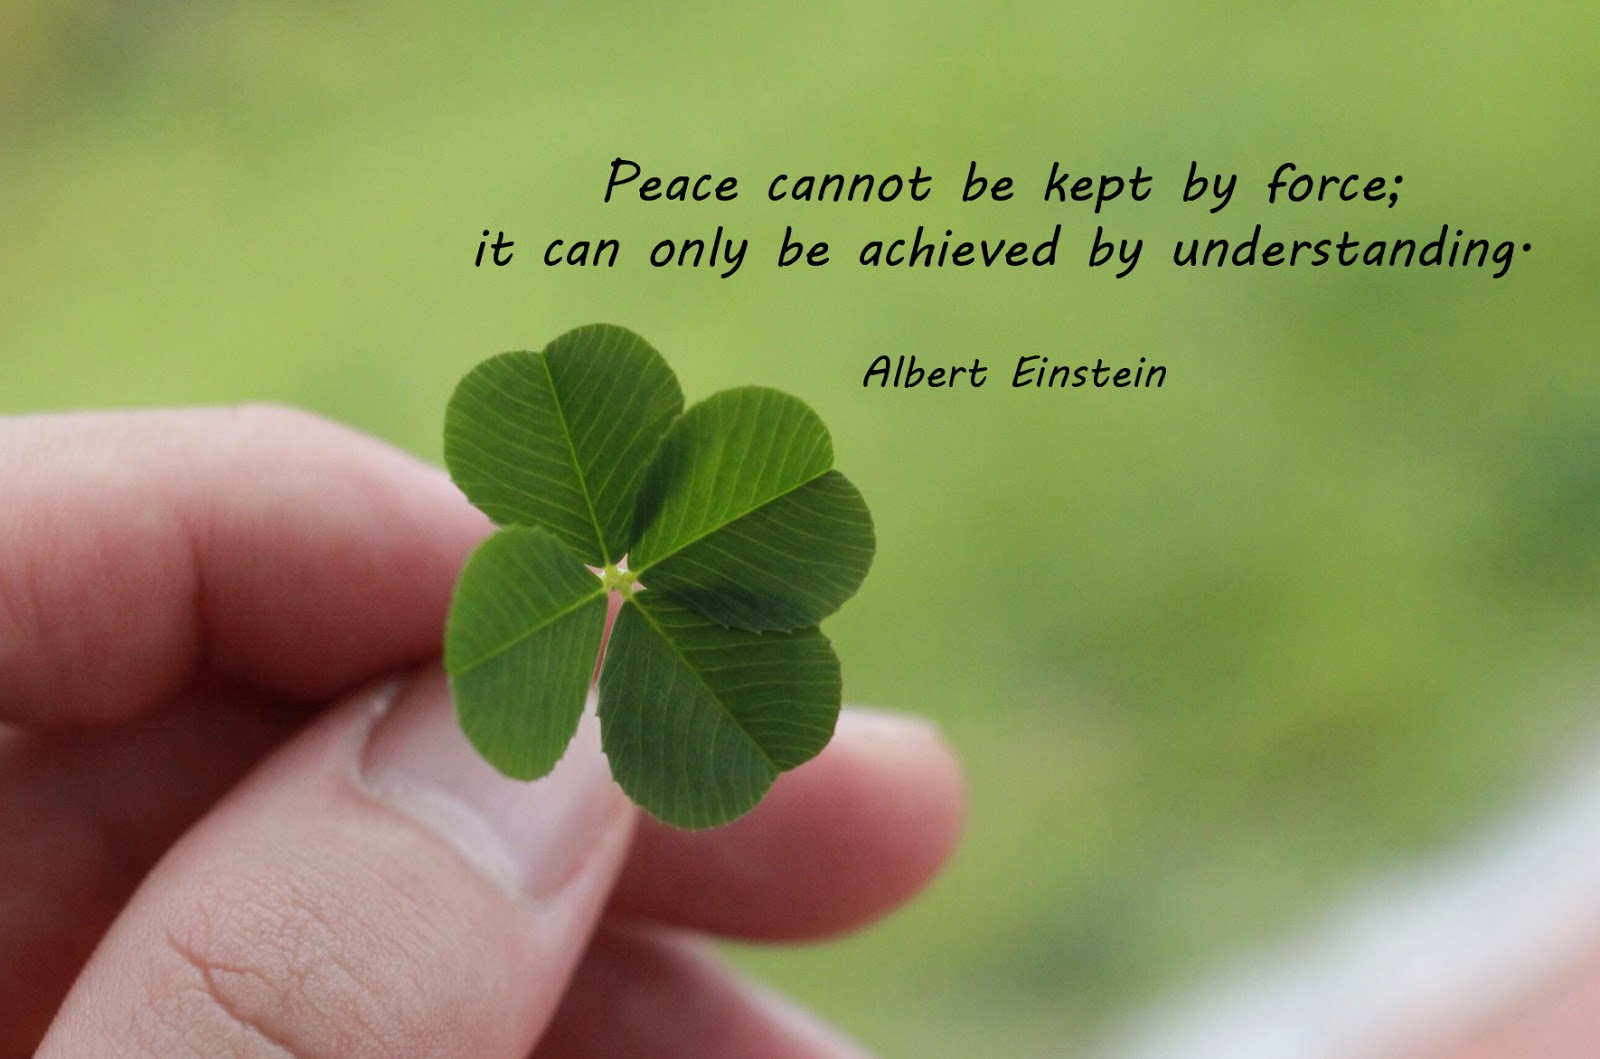 Peace Quotes: 40+ Inspirational Peace Quotes